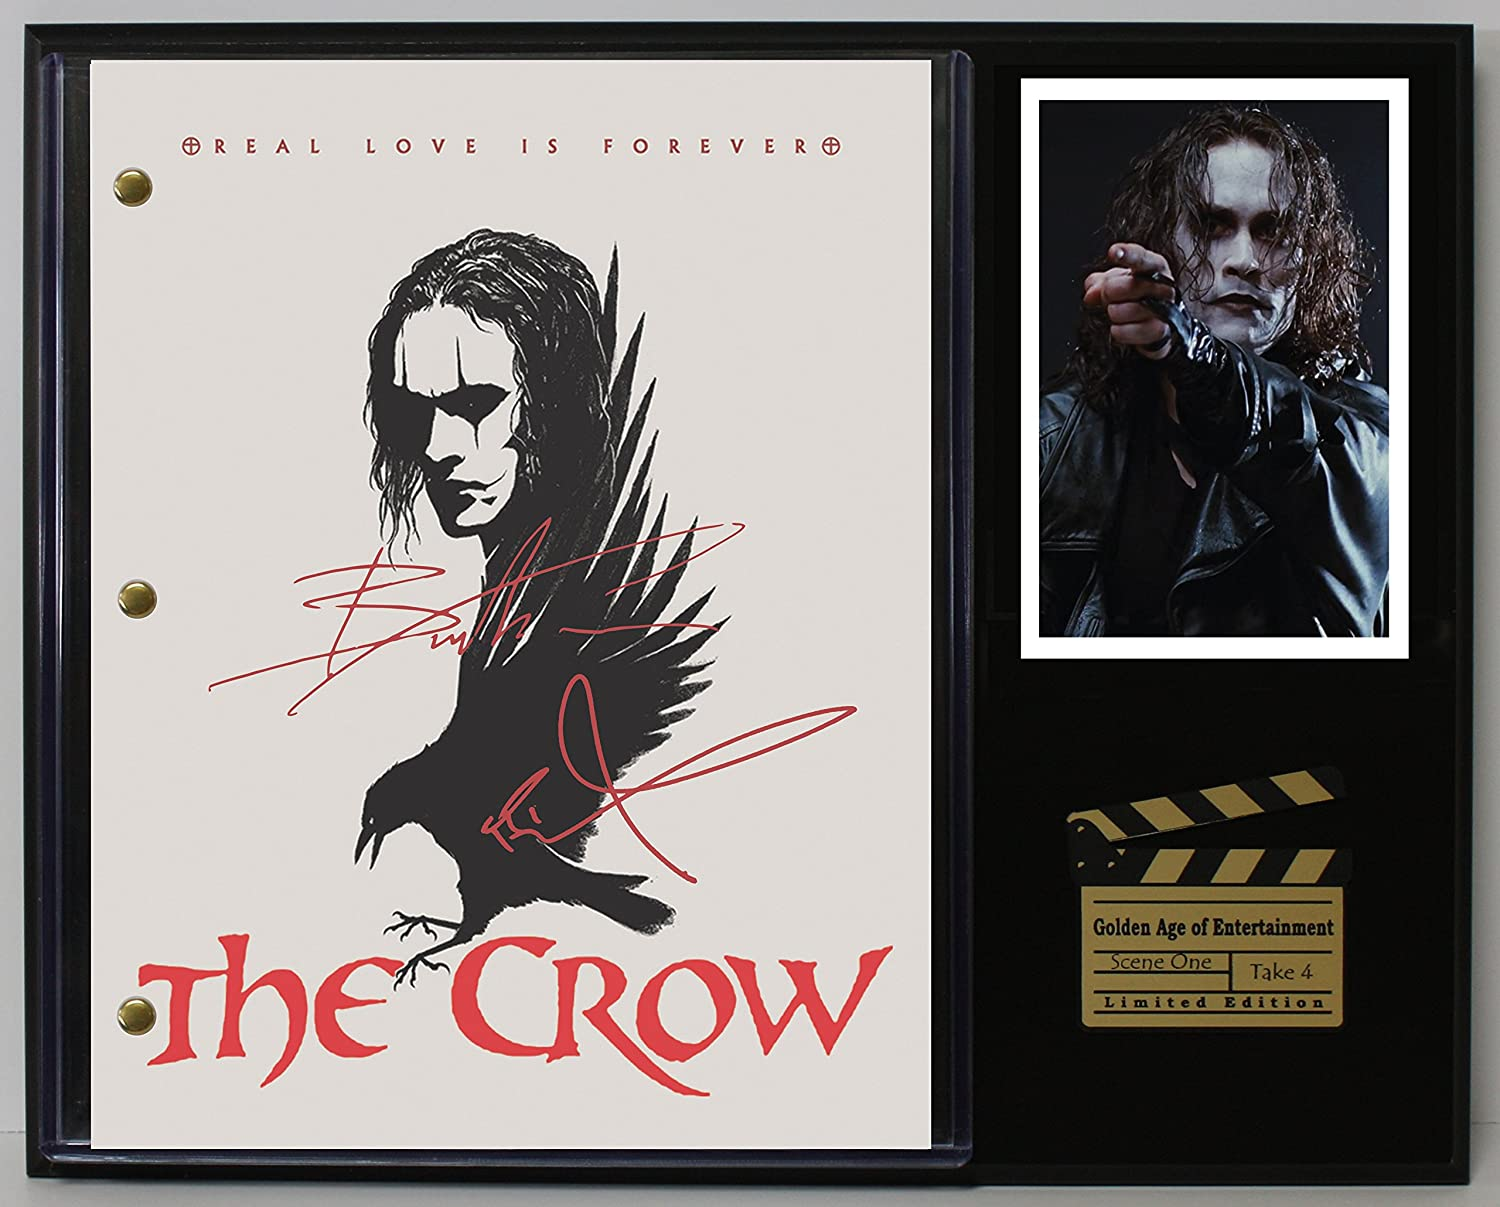 THE CROW LTD EDITION REPRODUCTION SIGNED CINEMA SCRIPT DISPLAY'C3'